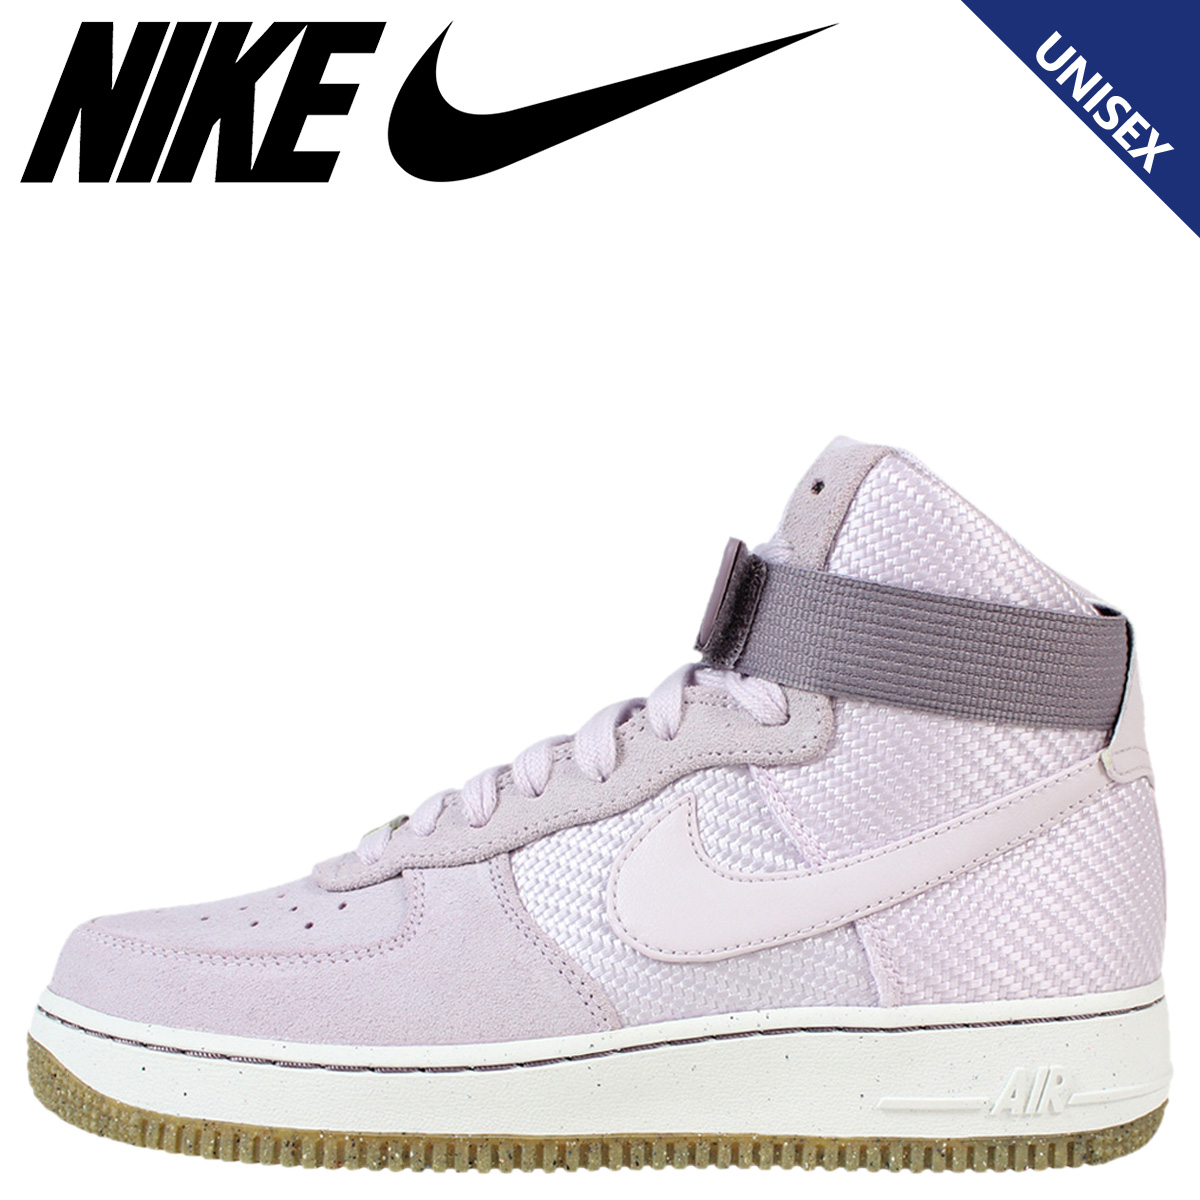 check out 4c0cc 27982 NIKE Nike Air Force sneakers Womens WMNS AIR FORCE 1 HI PREMIUM EASTER PACK  air force 1 Easter 654440 - 500 men's shoes pink